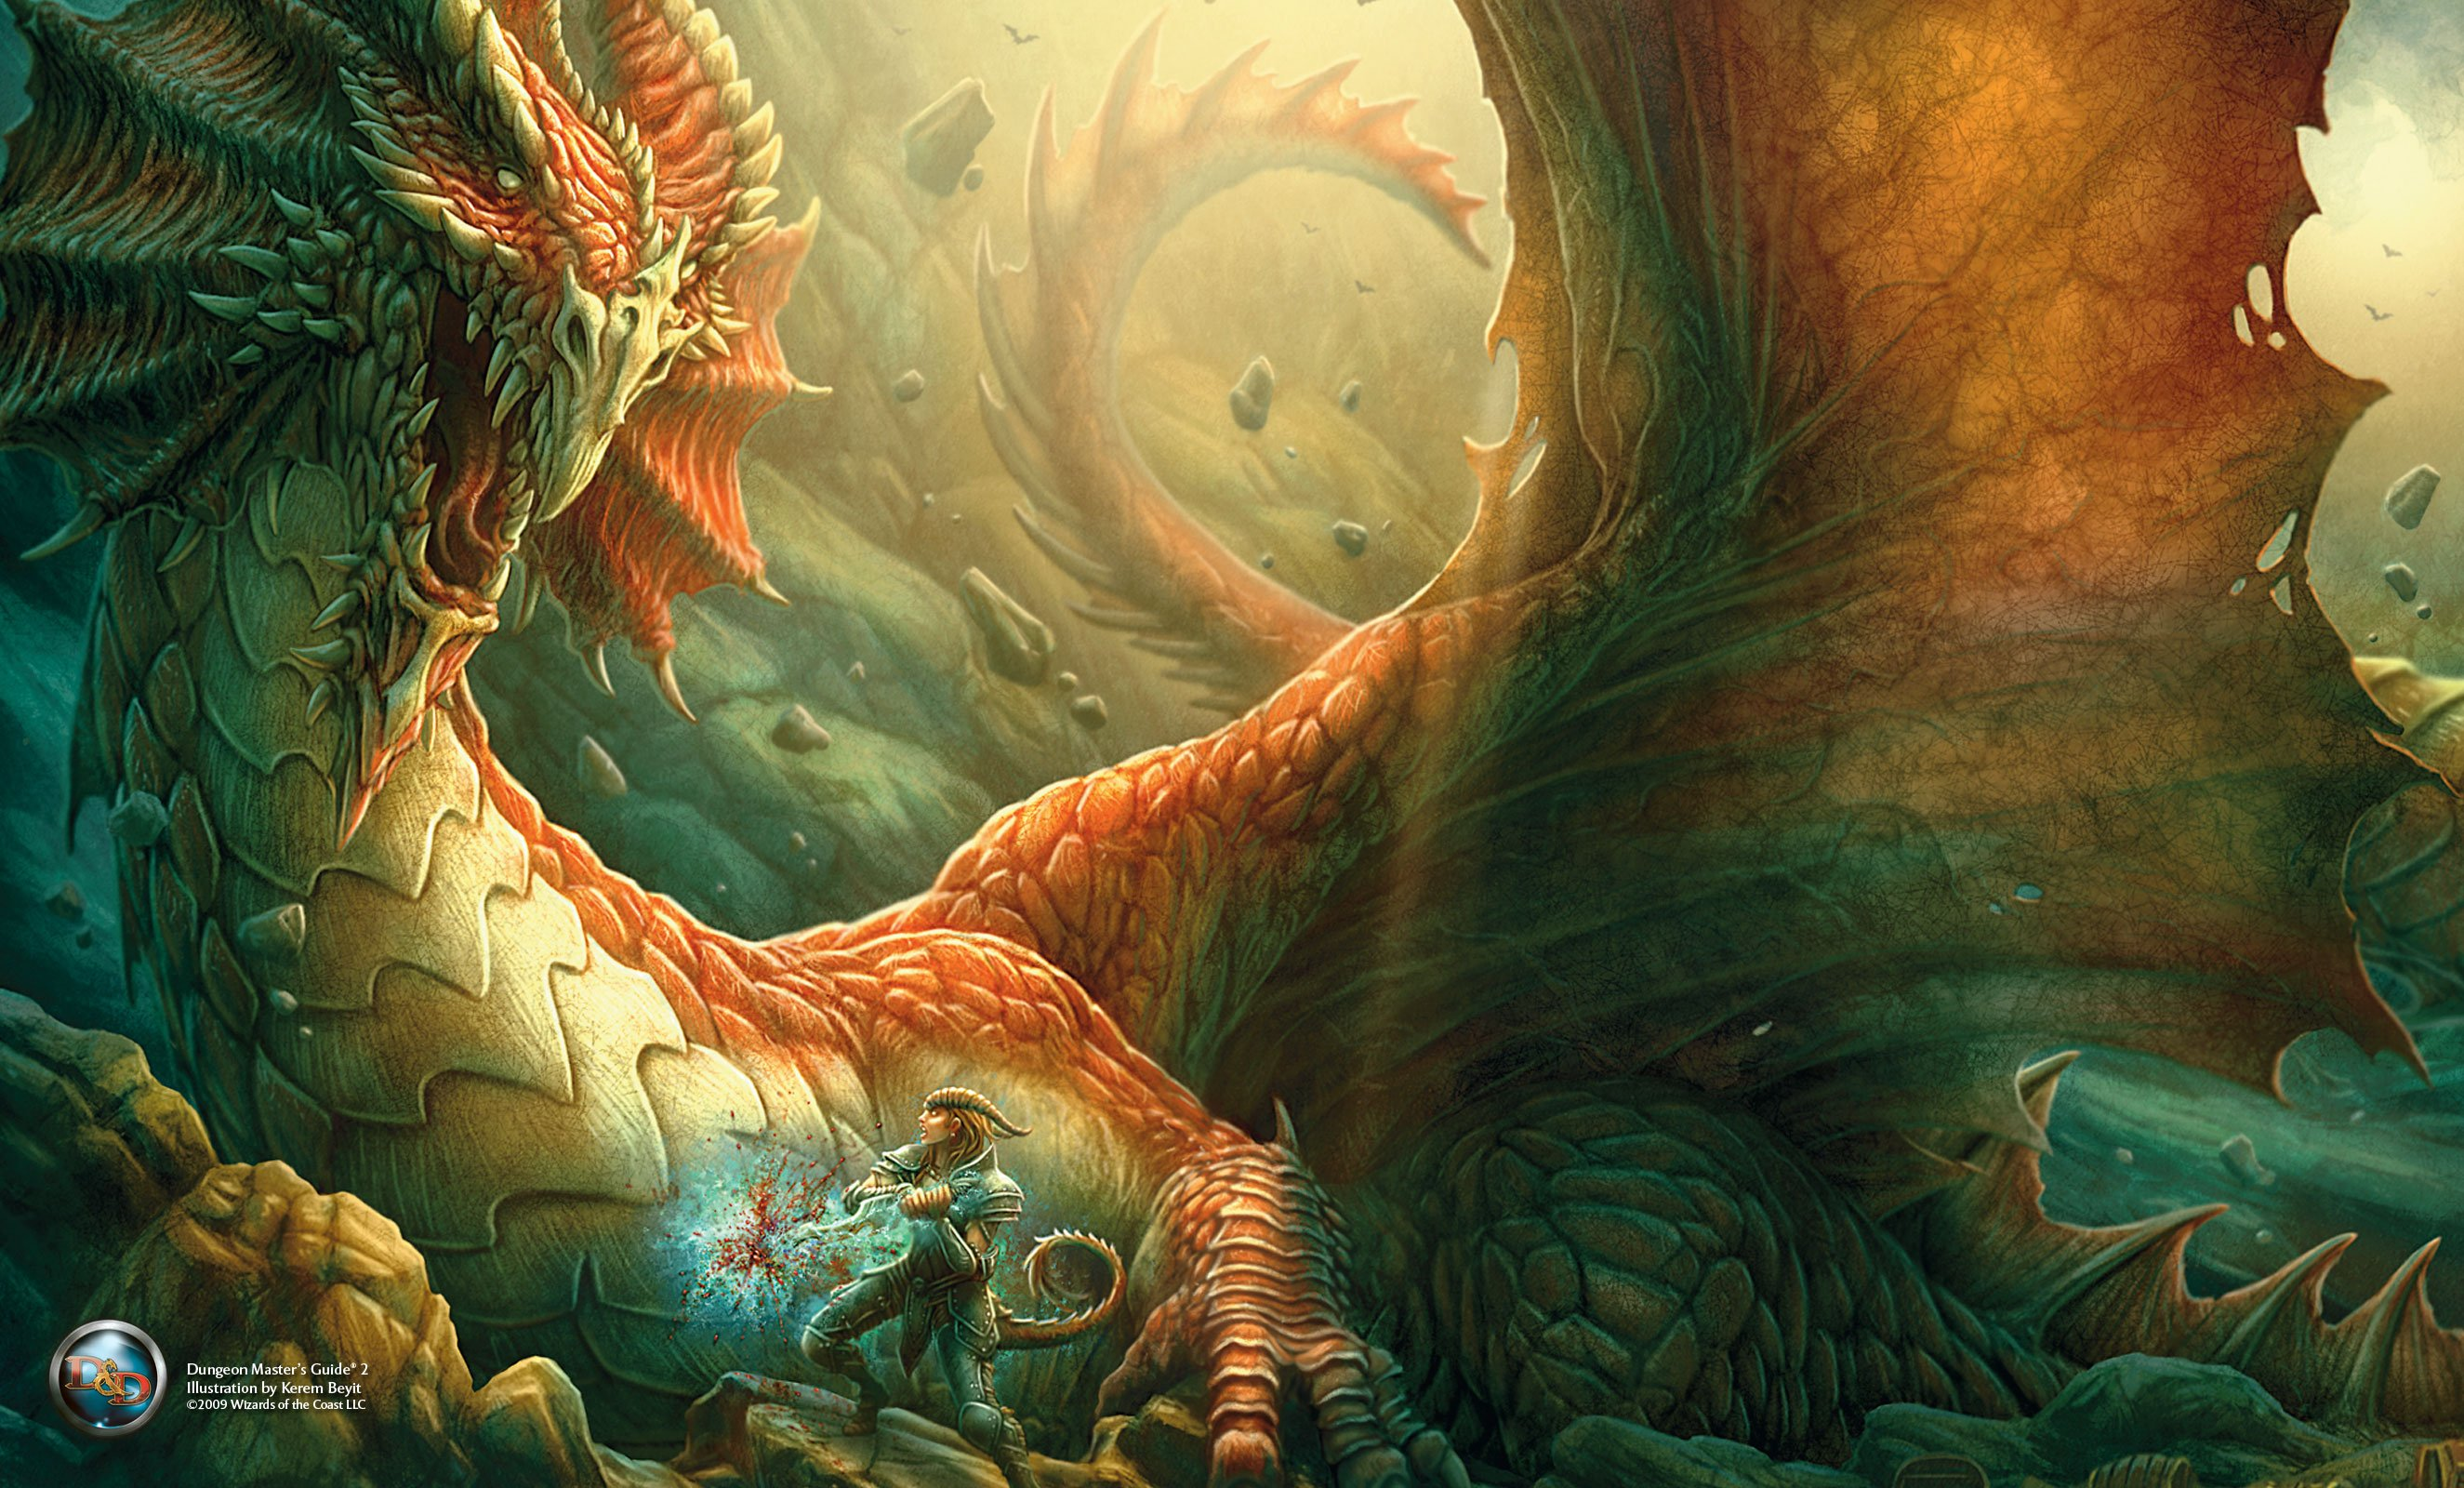 DUNGEONS AND DRAGONS Fantasy Adventure Board Rpg Dungeons Dragons 44 Wallpaper